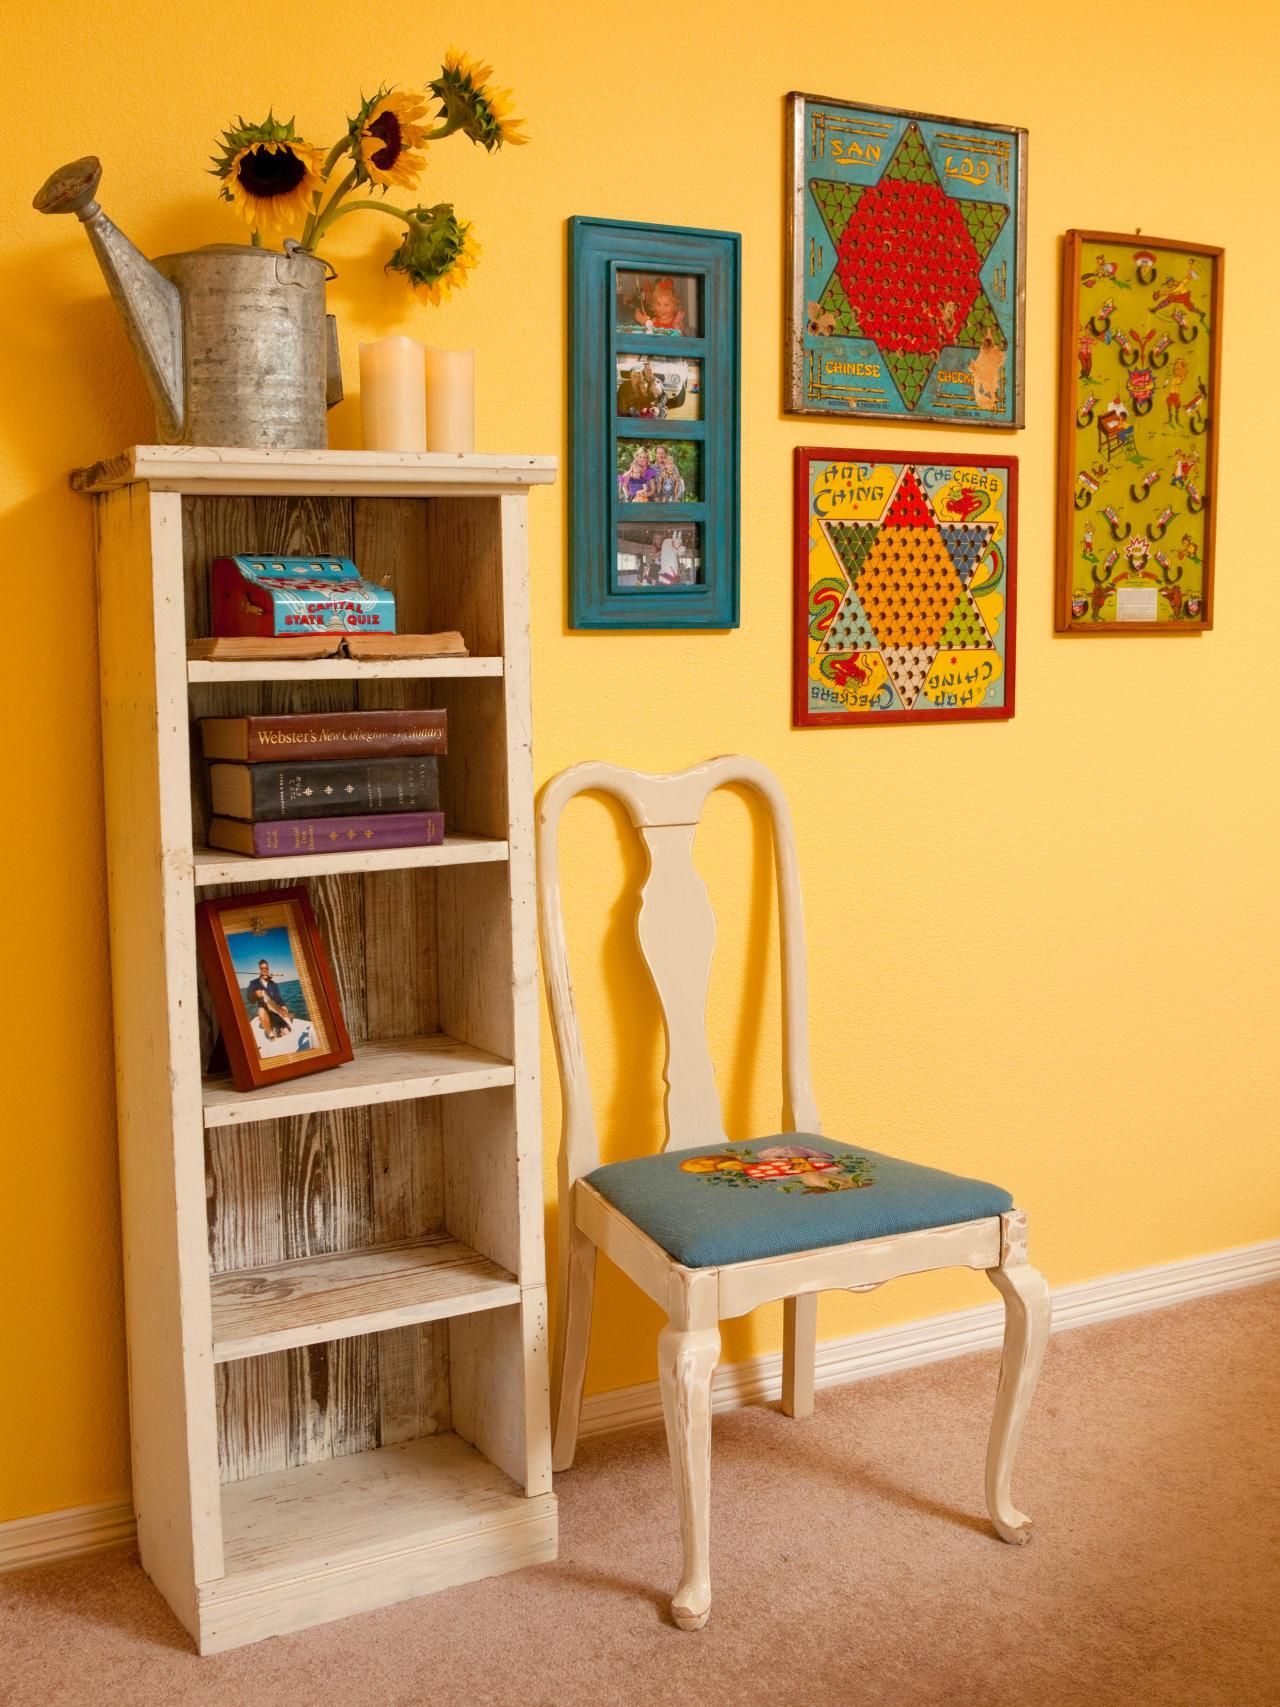 Decorate With Upcycled Wall Art, Shelves and Storage | Game boards ...